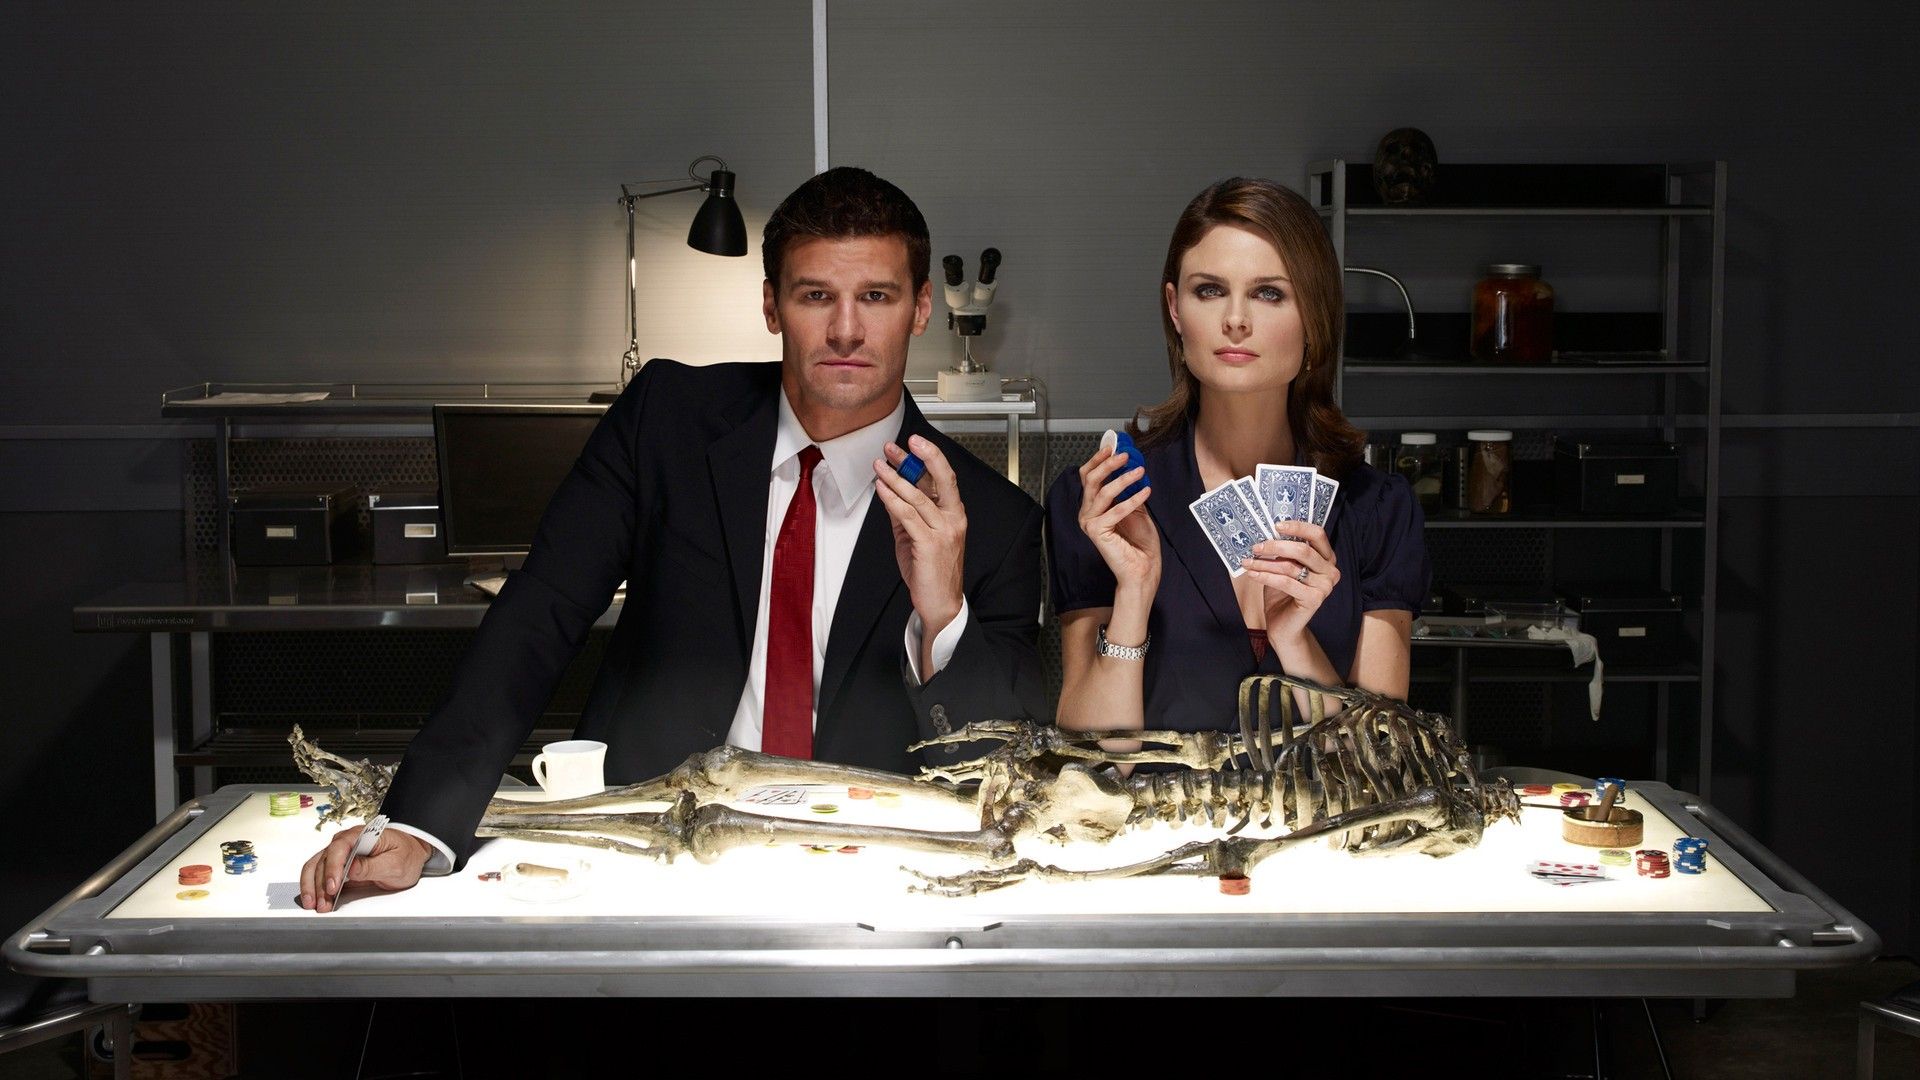 Bones Tv Series HD Shows 4k Wallpapers Images Backgrounds